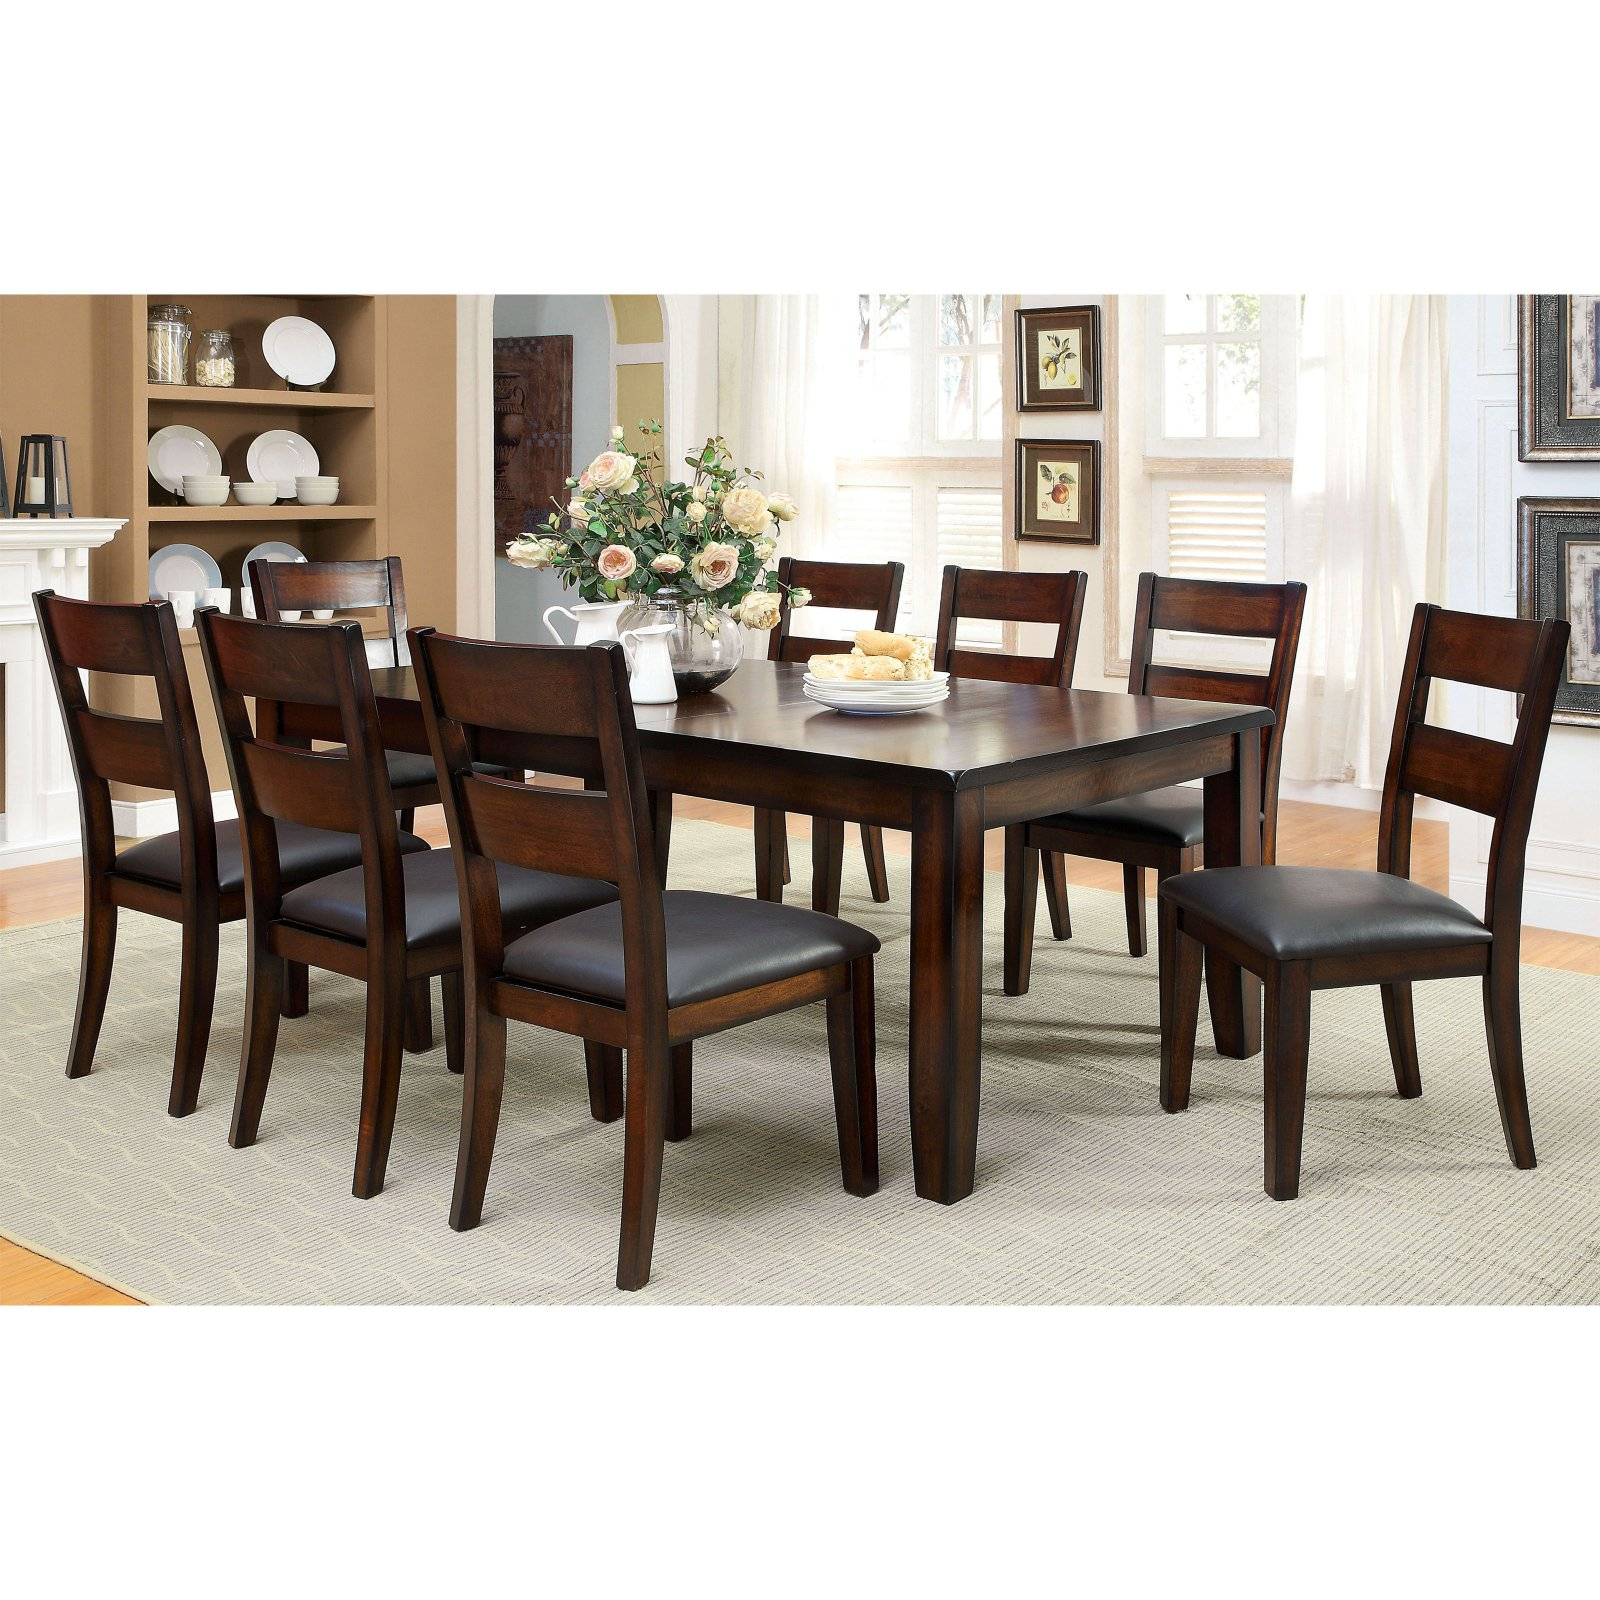 Furniture of America Gibson Bold 9 Piece Dining Table Set by Enitial Lab